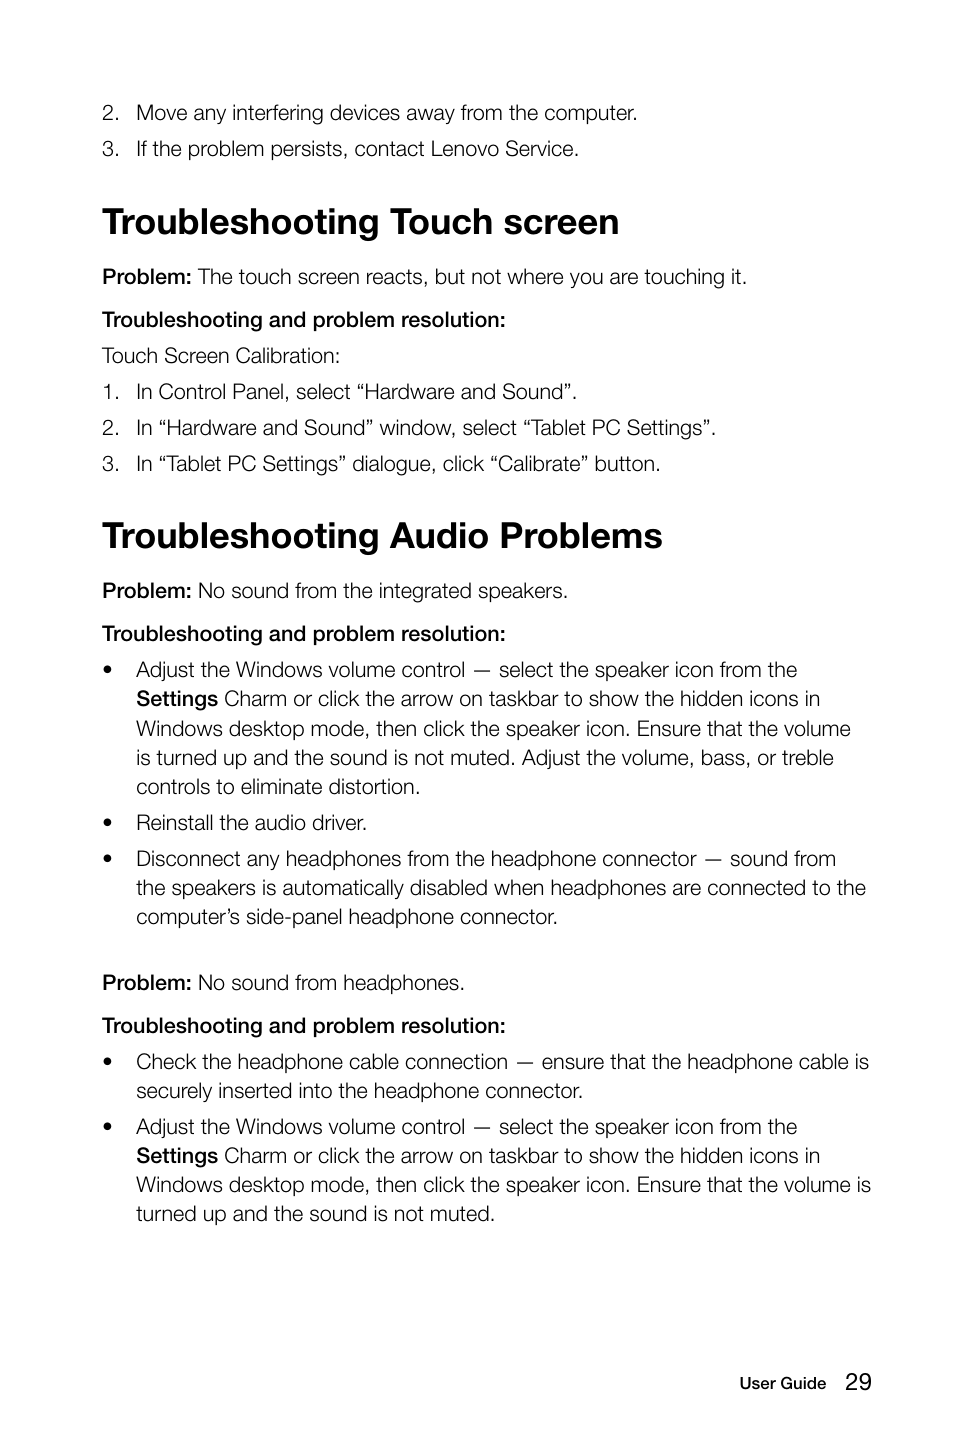 Troubleshooting touch screen, Troubleshooting audio problems